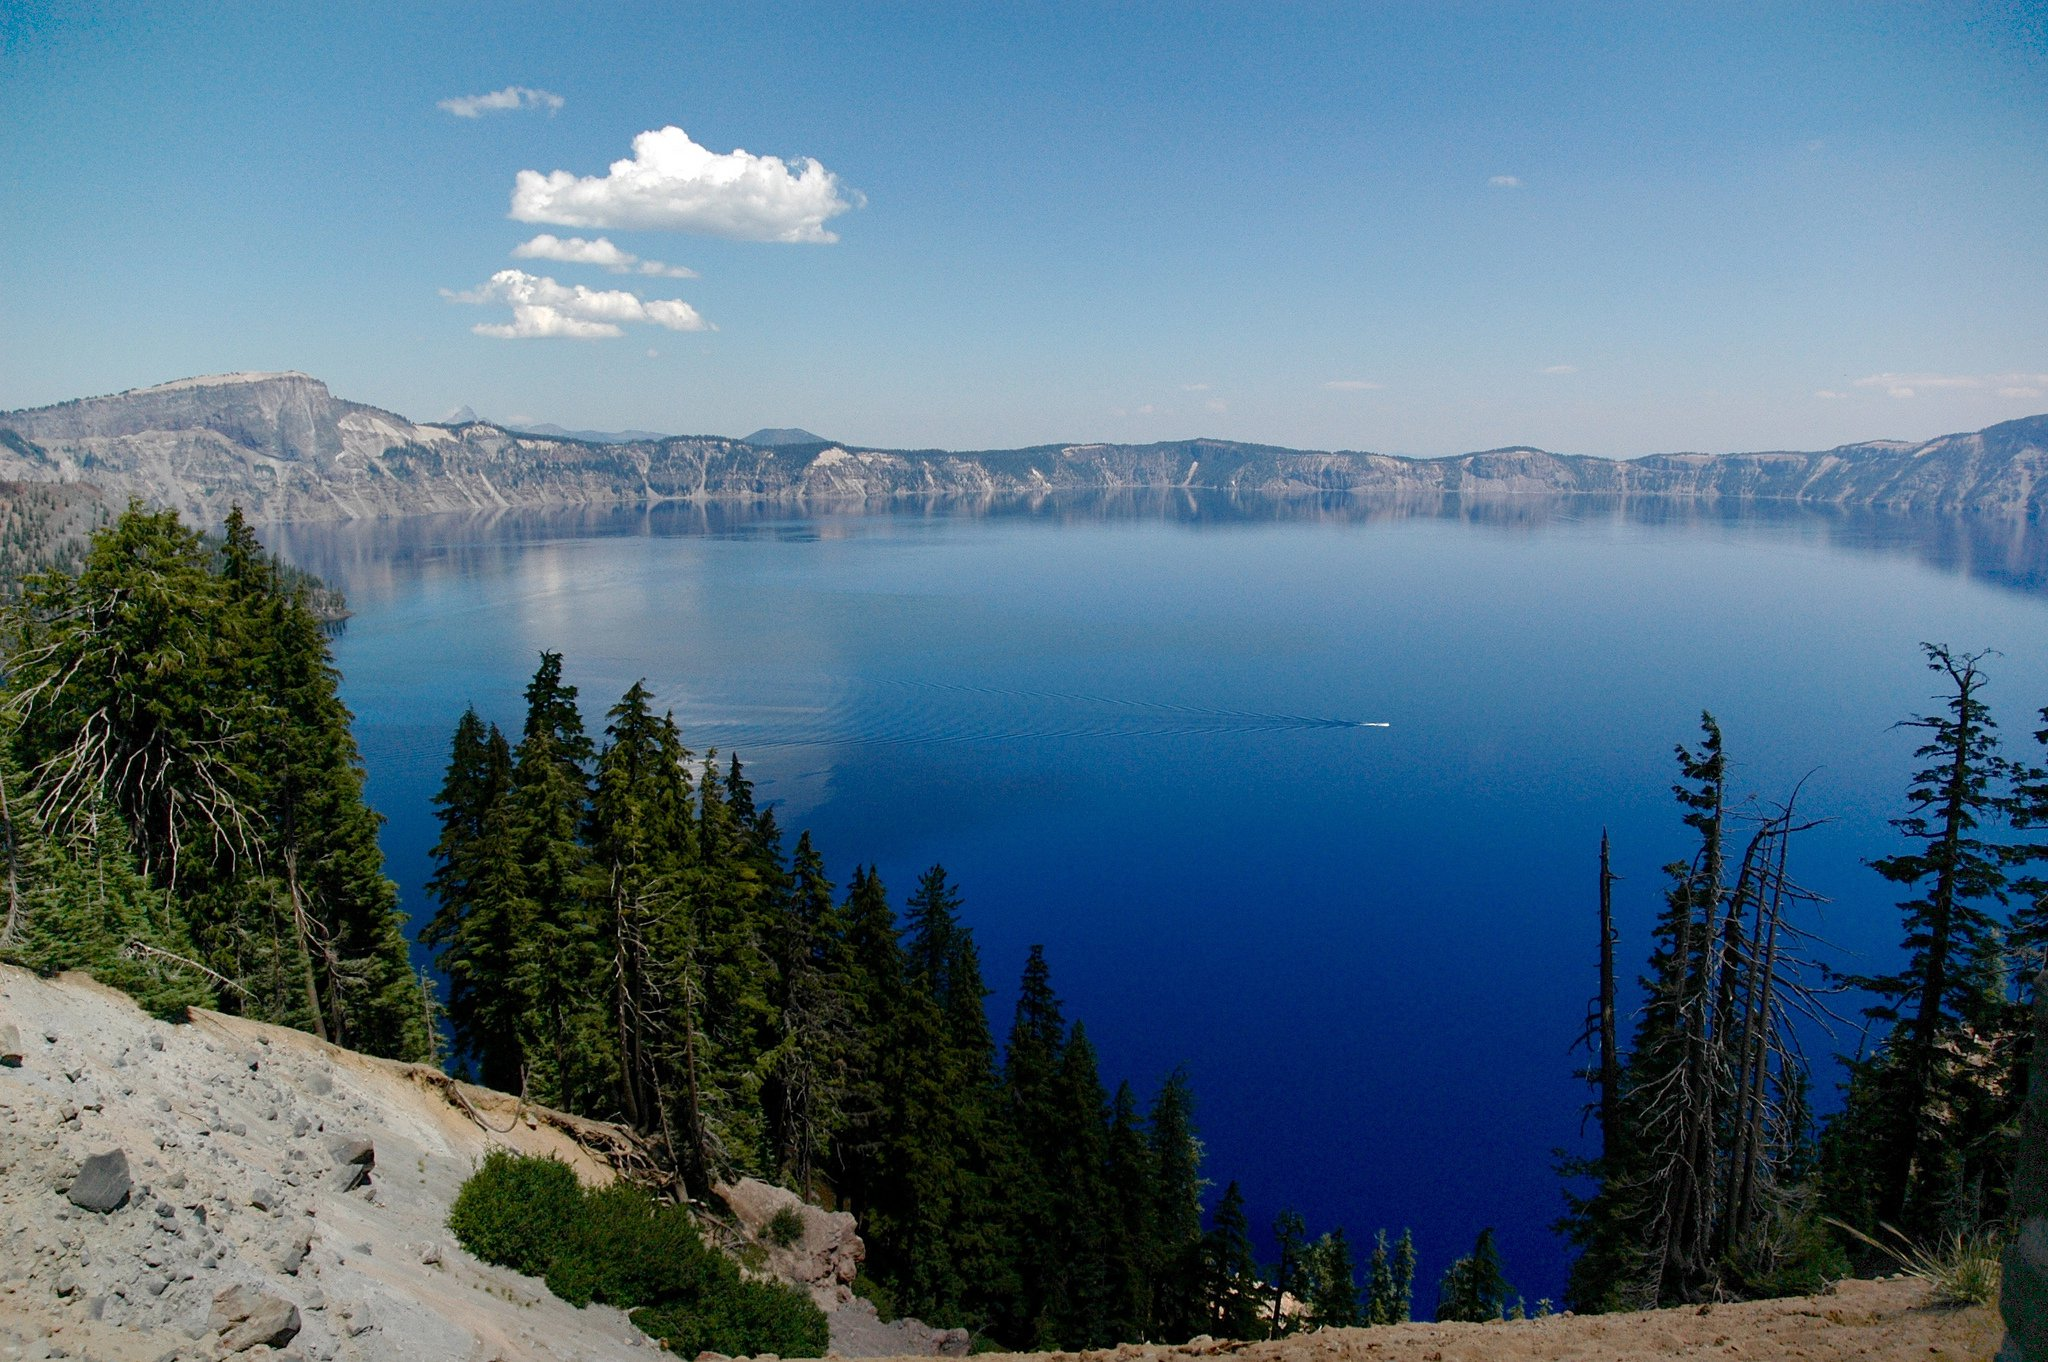 crater_lake_flickr_adavey.jpg